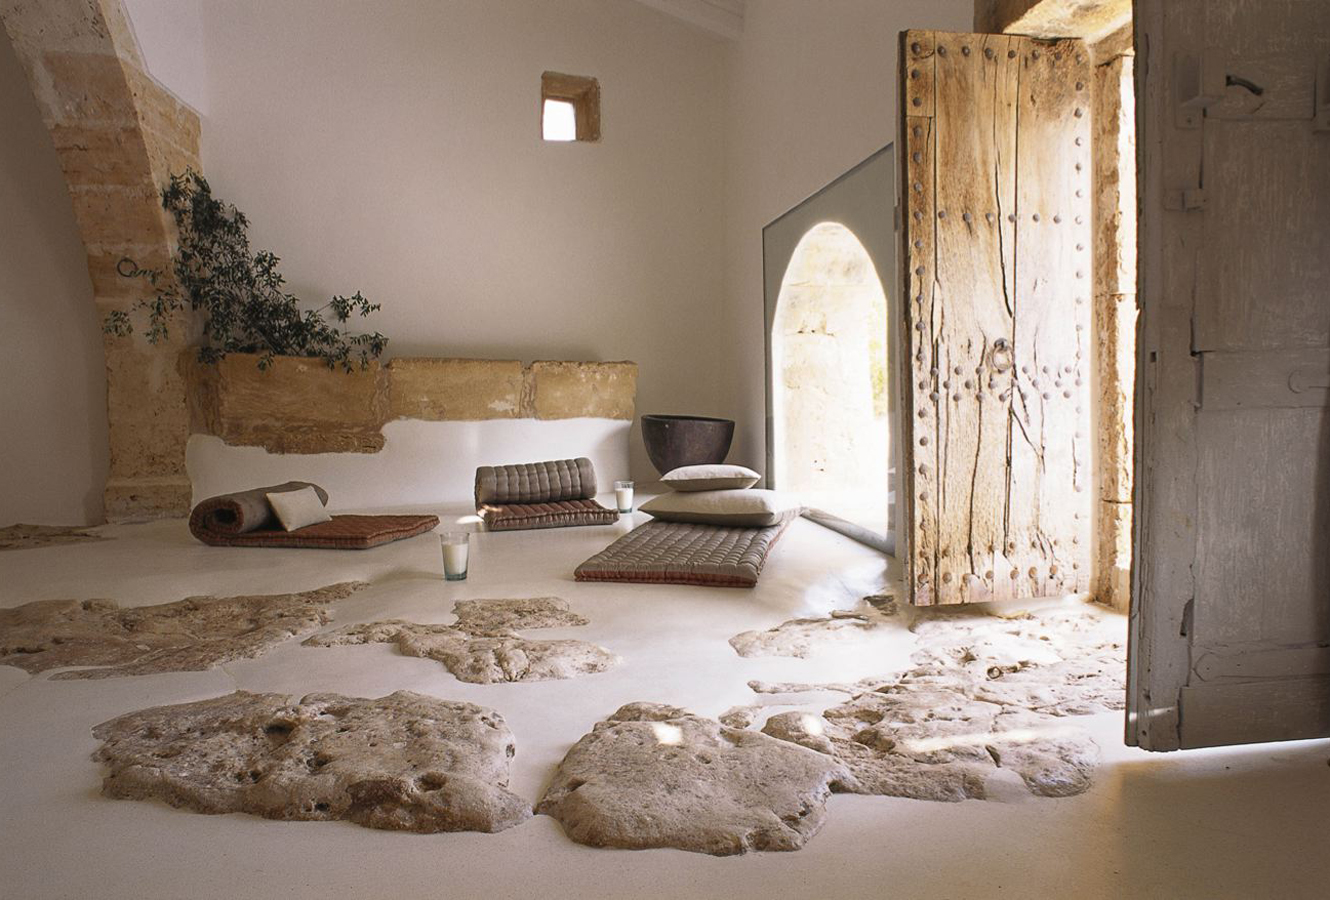 A renovated house in Mallorca